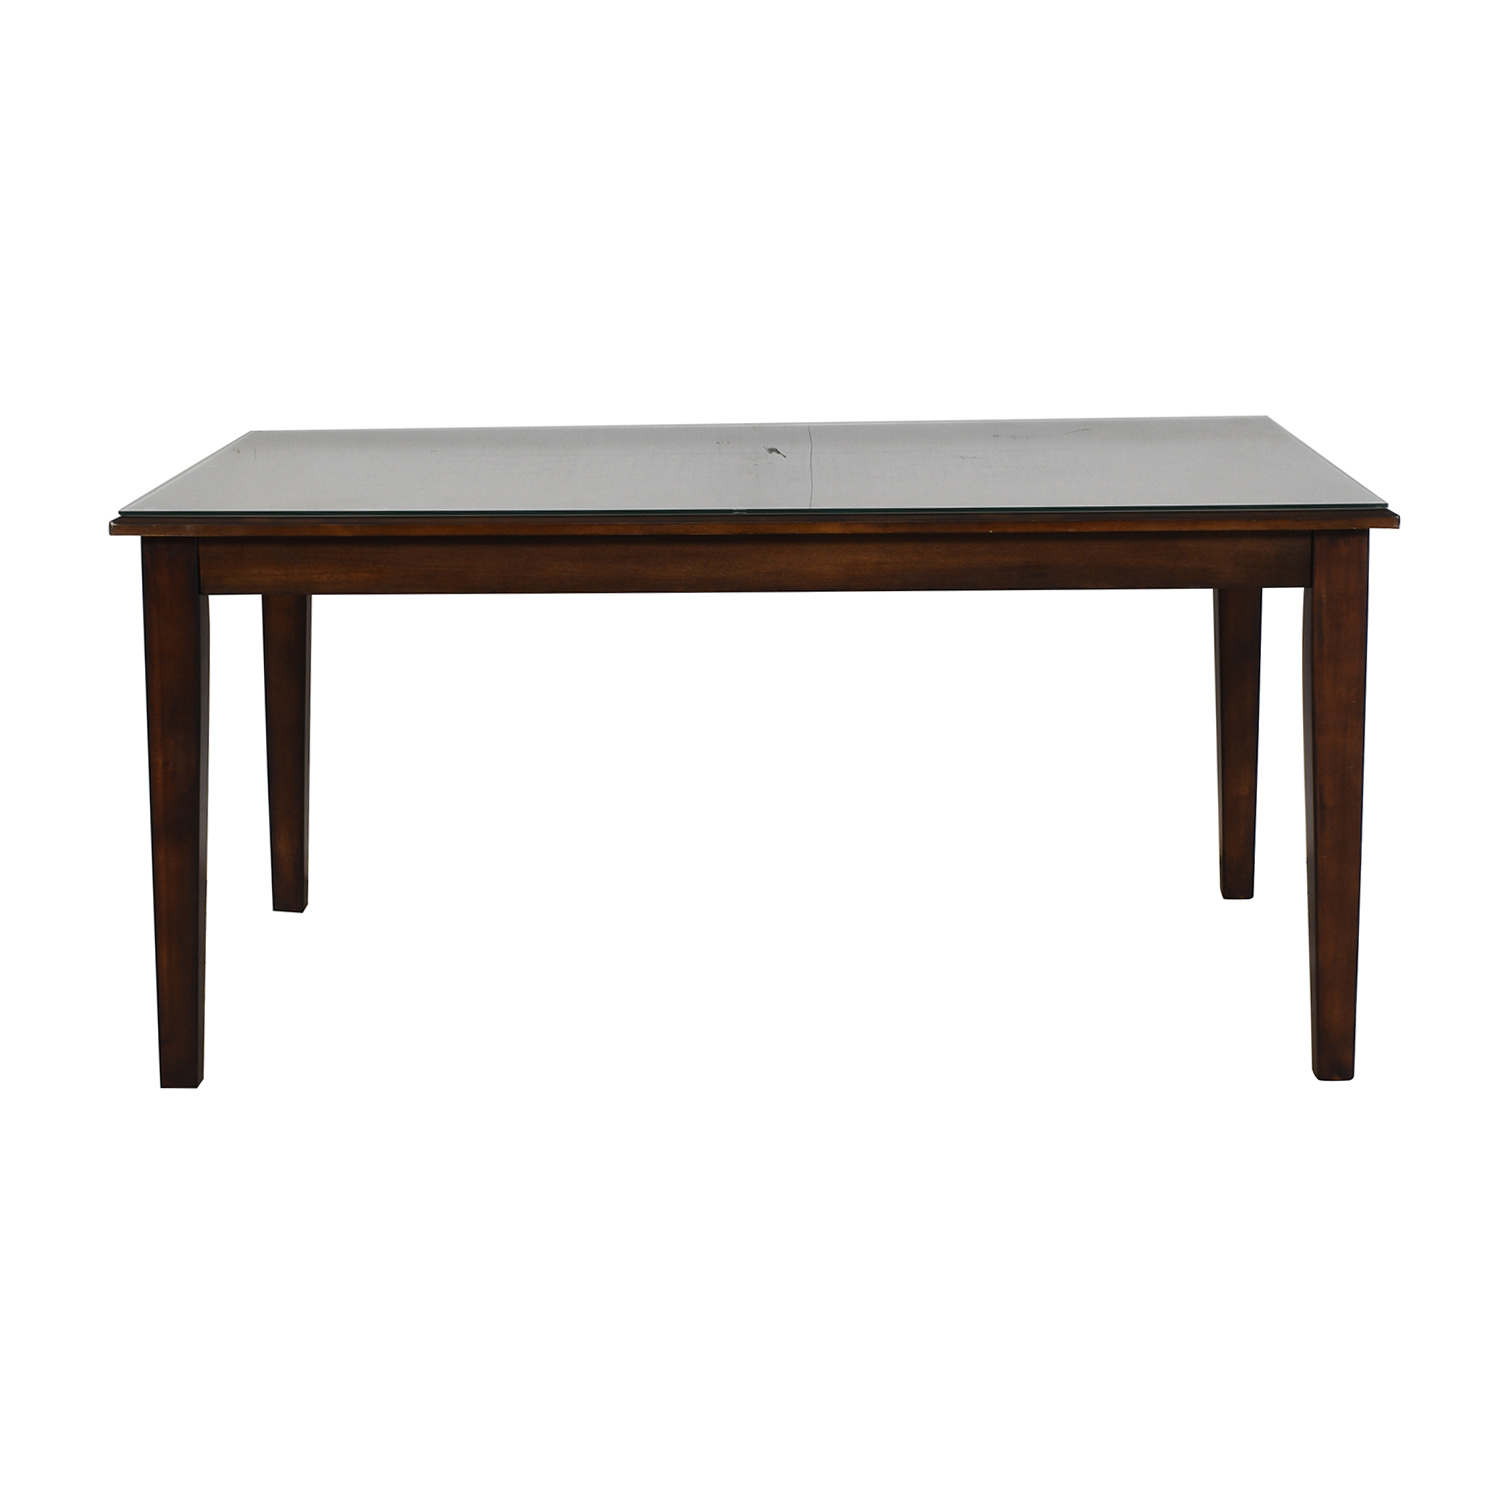 buy Jordan's Furniture Jordan's Furniture Dining Table online